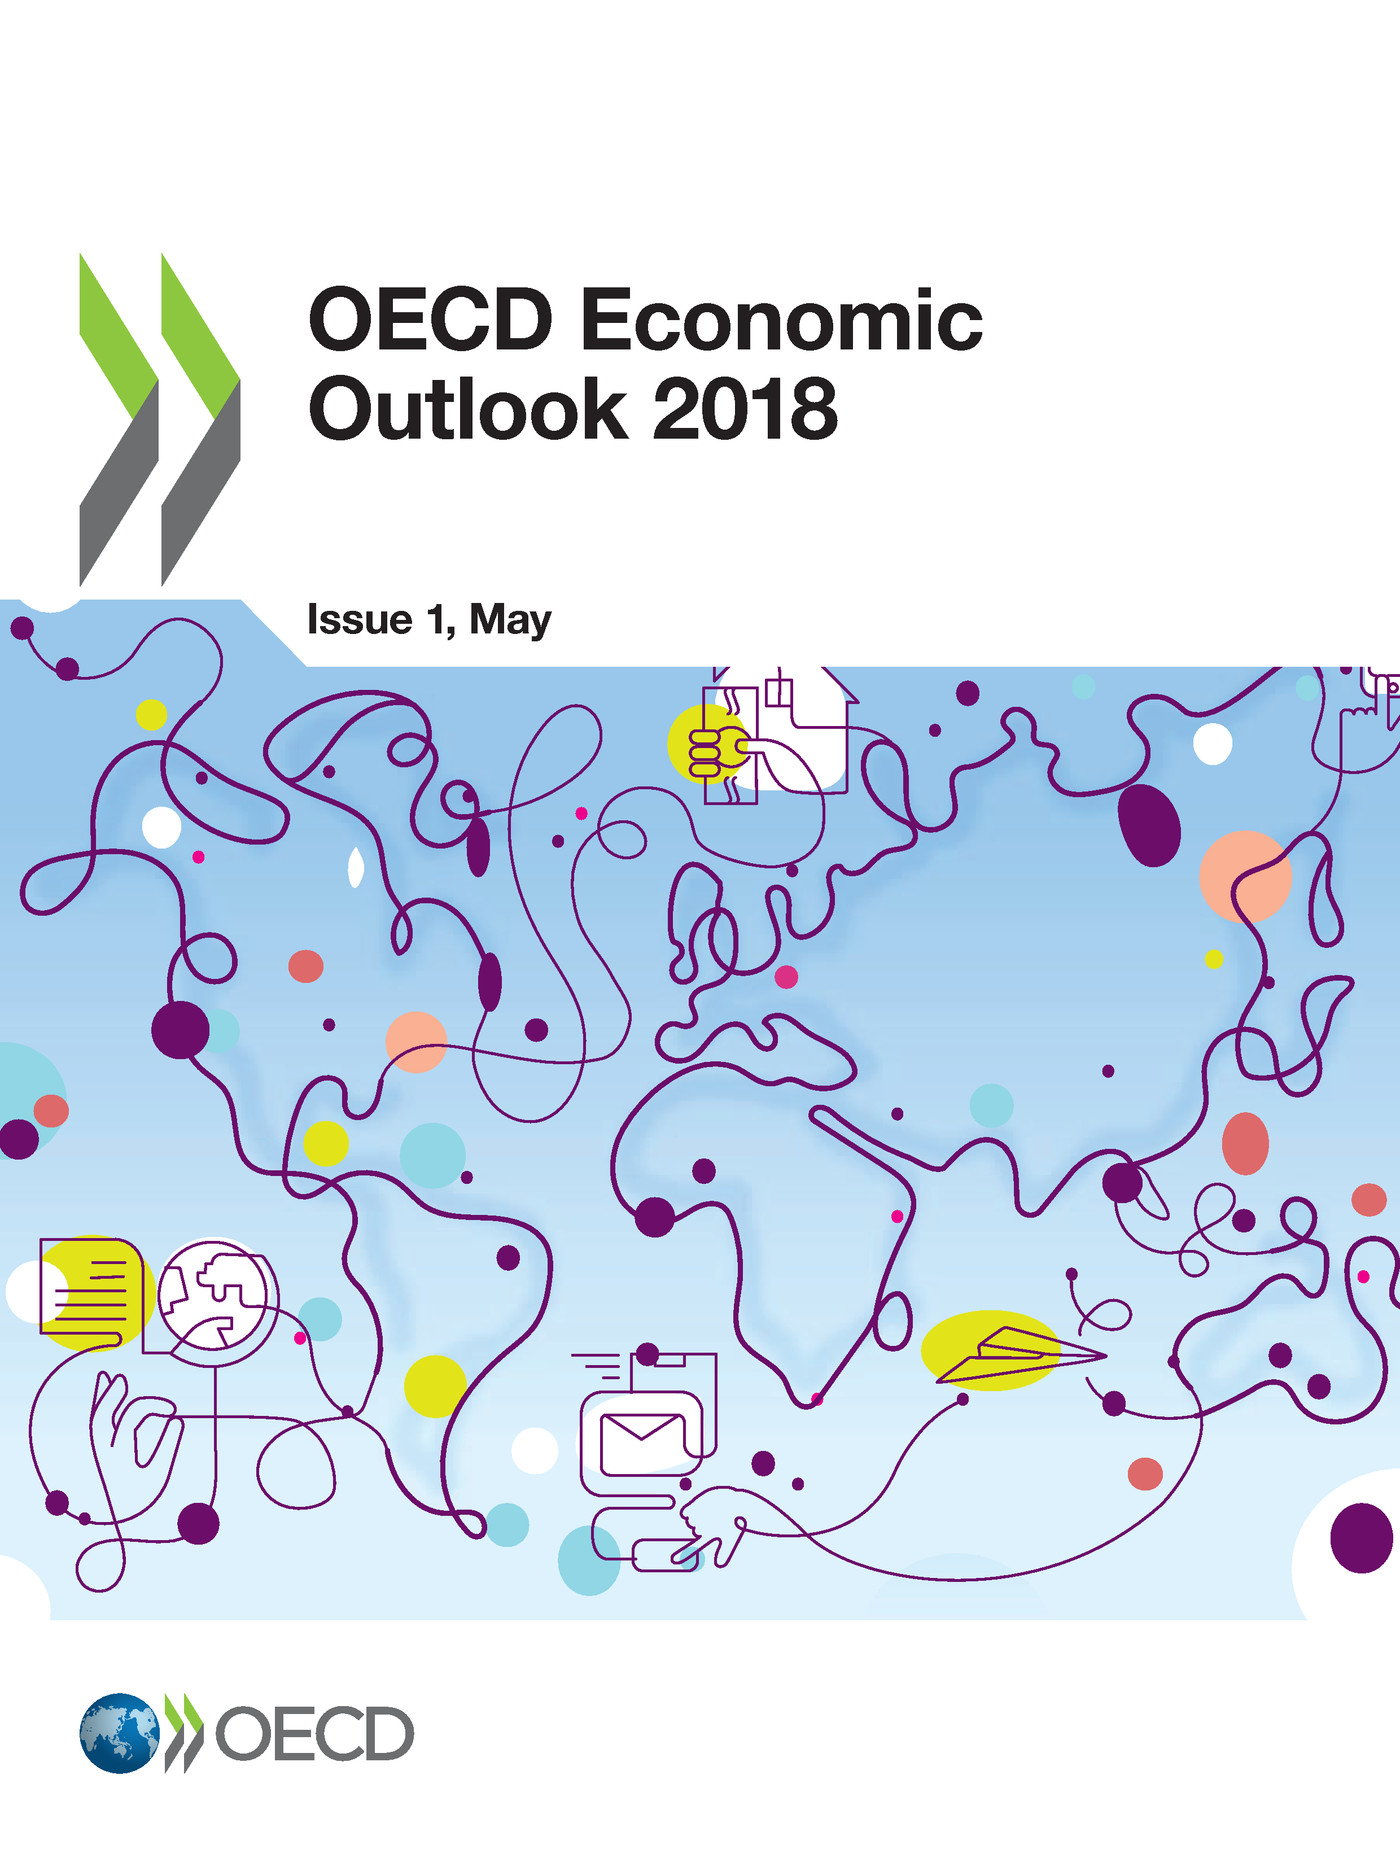 OECD Economic Outlook, Volume 2018 Issue 1 De  Collectif - OCDE / OECD